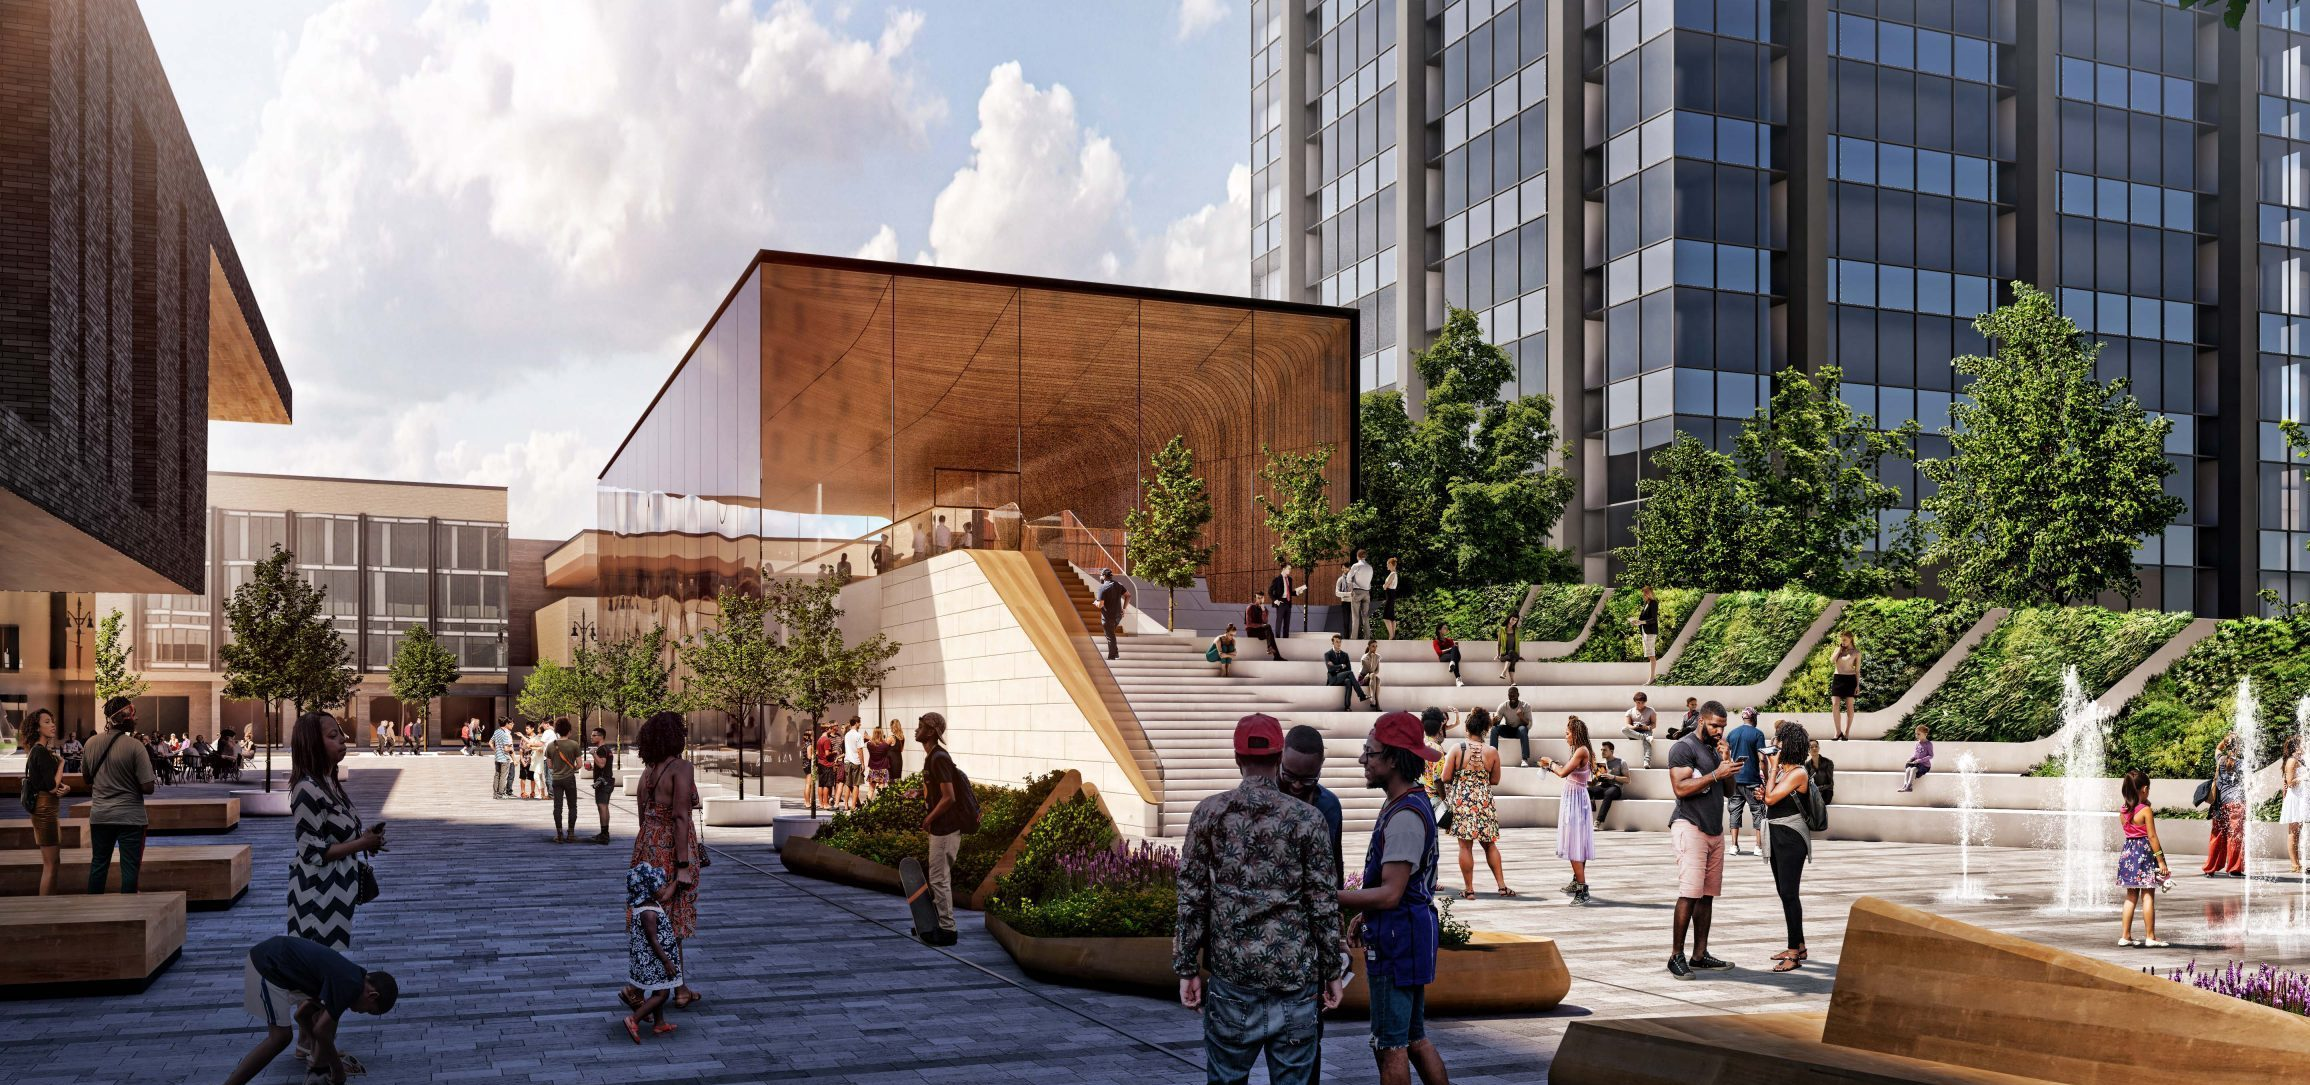 Rendering of public plaza and retail pavilion steps at the Mid Mixed-Use Development Project in Detroit Michigan Architecture and Urban Design